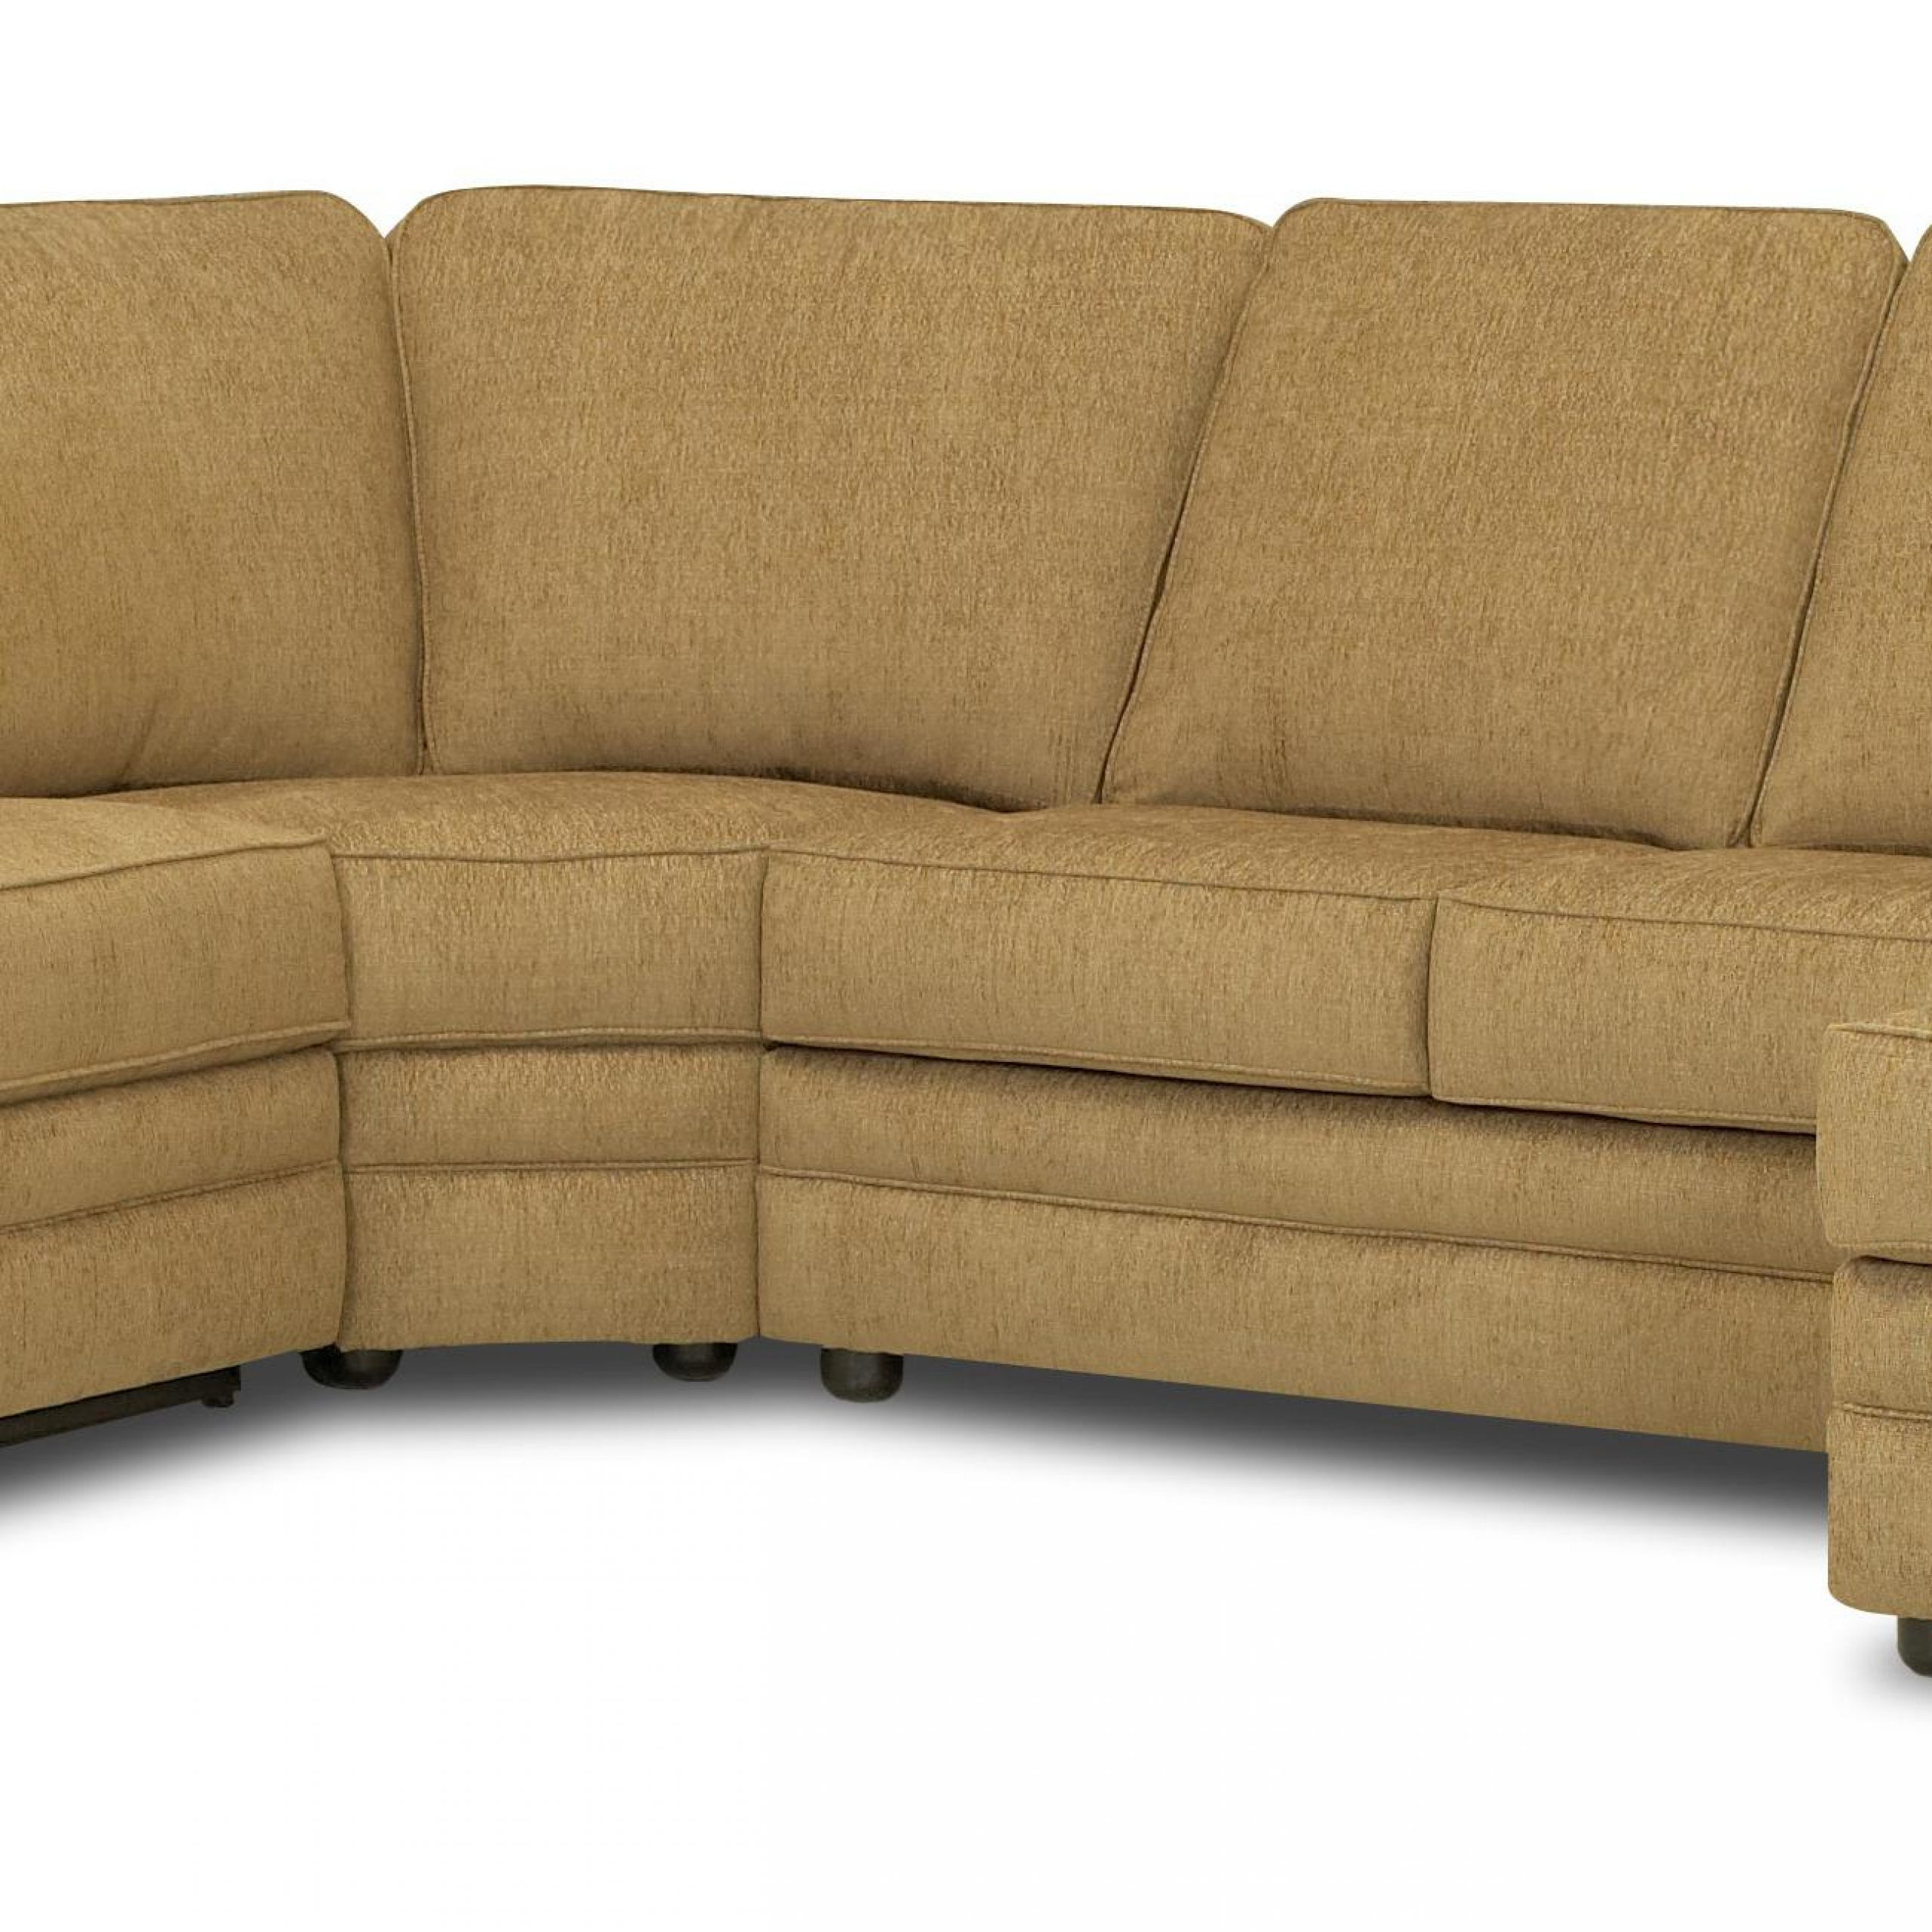 Widely Used Copenhagen Reclining Sectional Sofas With Right Storage Chaise For Reclining Sectional With Left Side Chaiseklaussner (View 19 of 25)